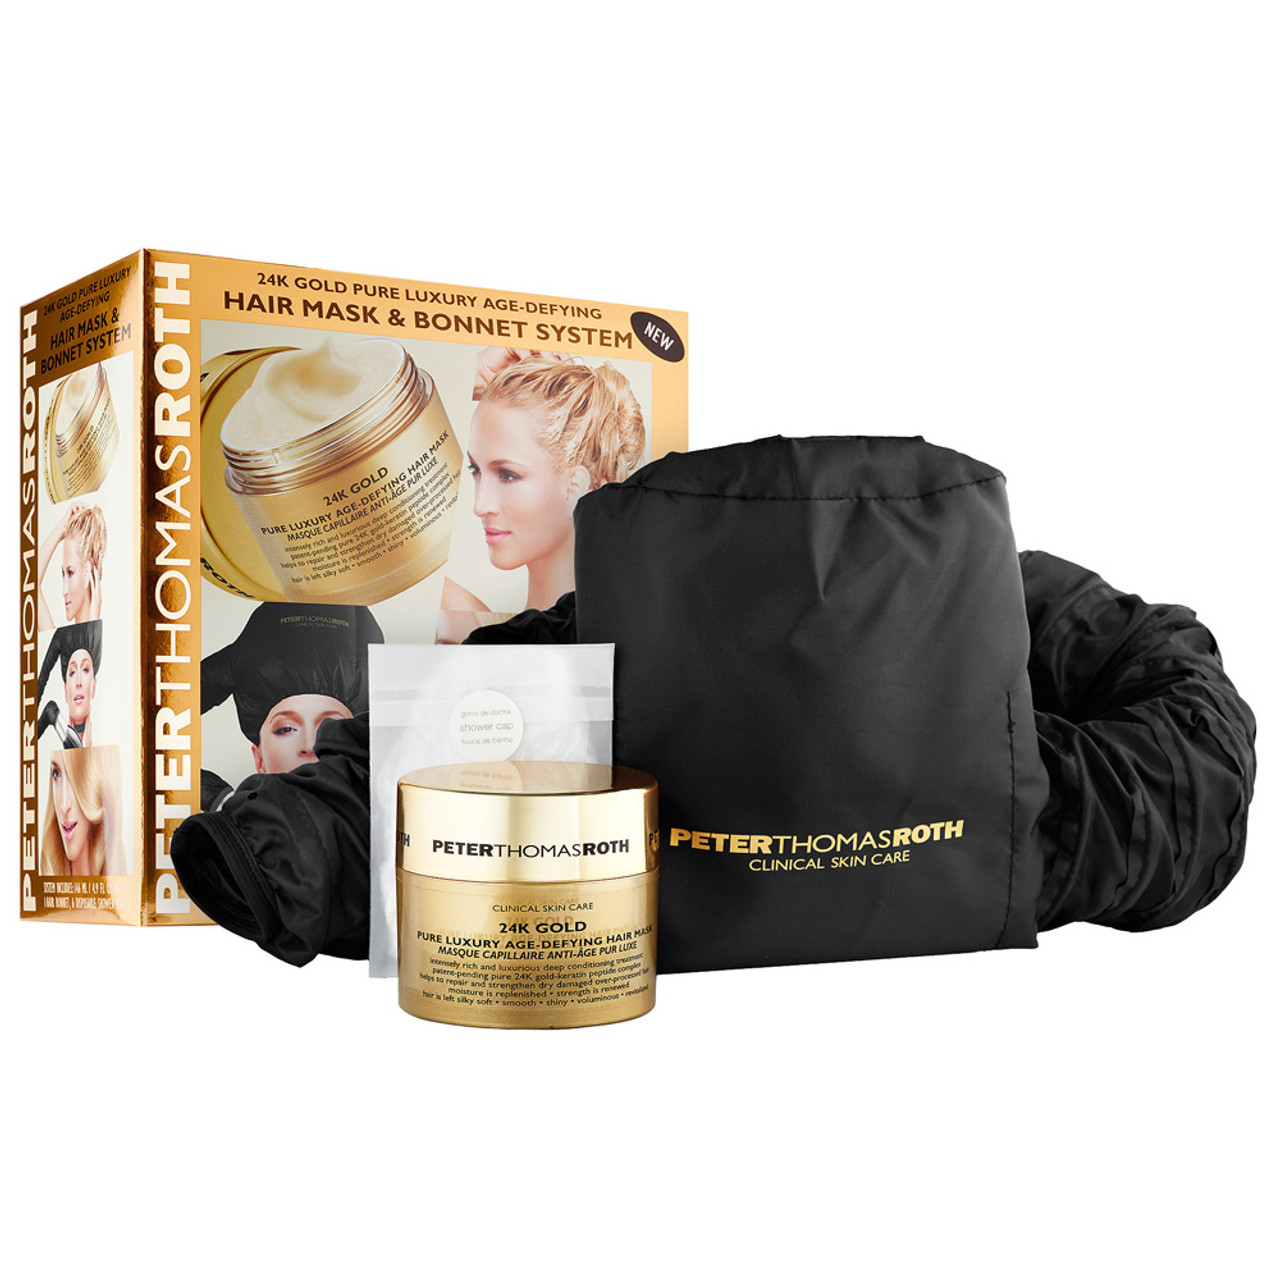 Peter Thomas Roth BONNET SYSTEM 24K GOLD PURE LUXURY AGE-DEFYING HAIR MASK